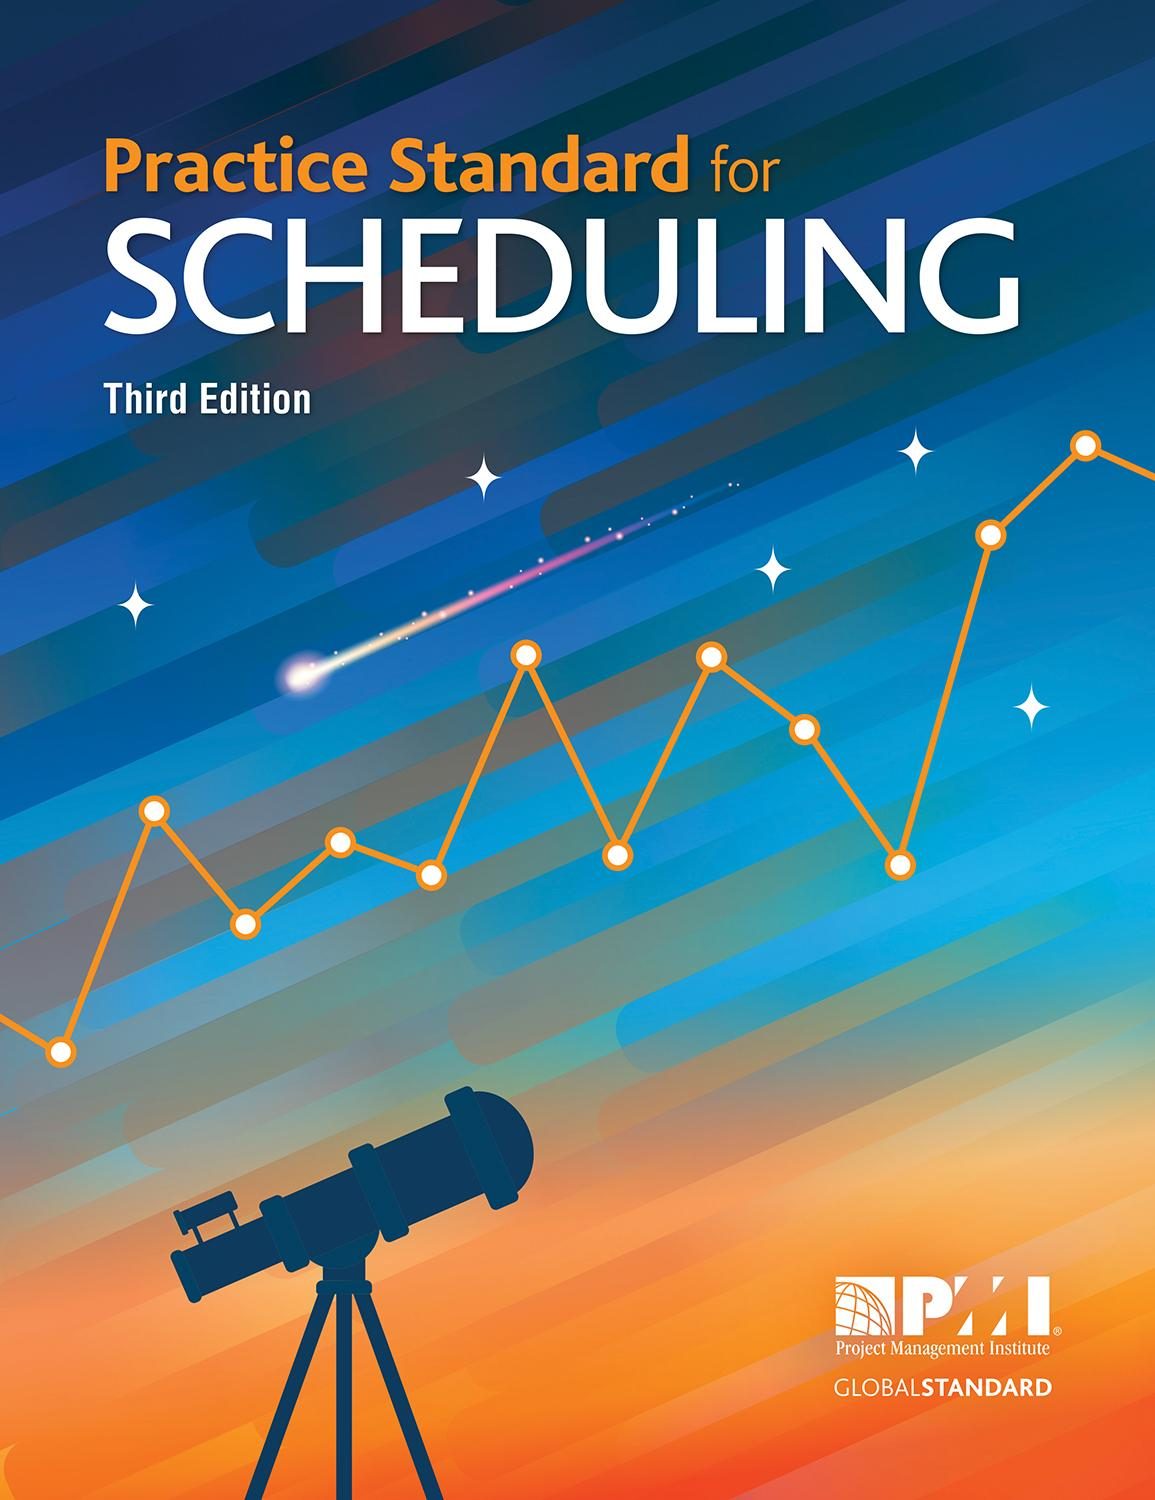 practice-standard-for-scheduling-3rd-edition.jpg